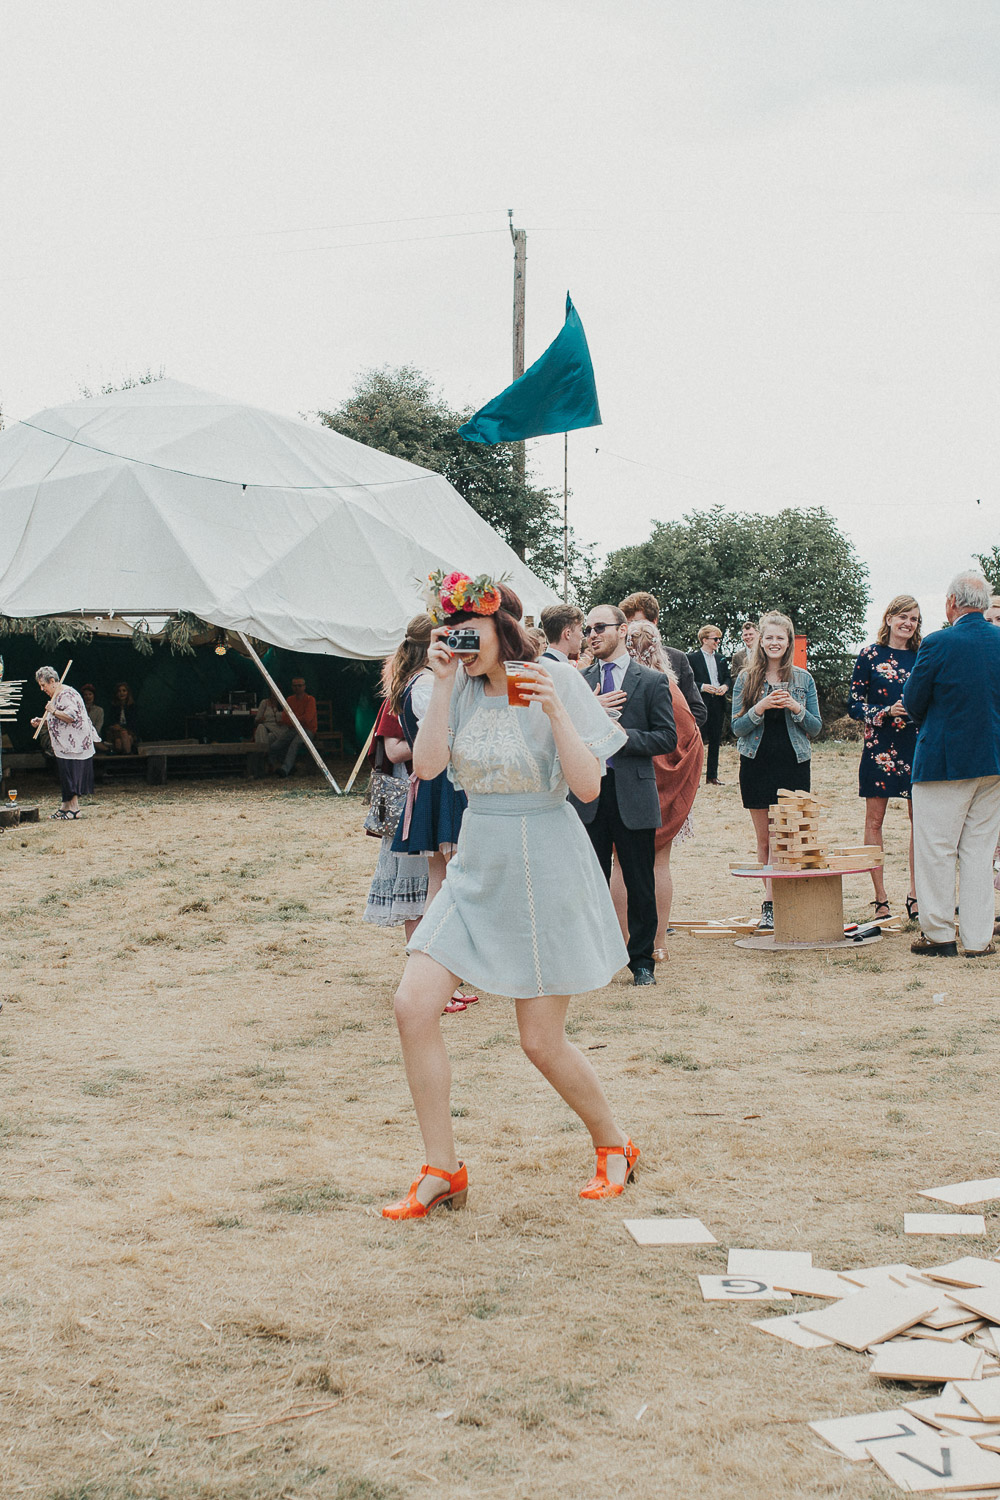 alternative wedding dress, Colourful wedding, cool bride, cool groom, DIY wedding, eco friendly wedding, festival vibe, festival wedding, floral crown, fun wedding, ginger bride, gluten free catering, Handmade wedding, joasis photography, mulberry lodge, mulberry lodge weddings, outdoor wedding, pom poms, quirky bride, red hair bride, relaxed wedding, rustic wedding, Smugglers, vegan catering, vintage wedding dress, wedding games, woodland wedding